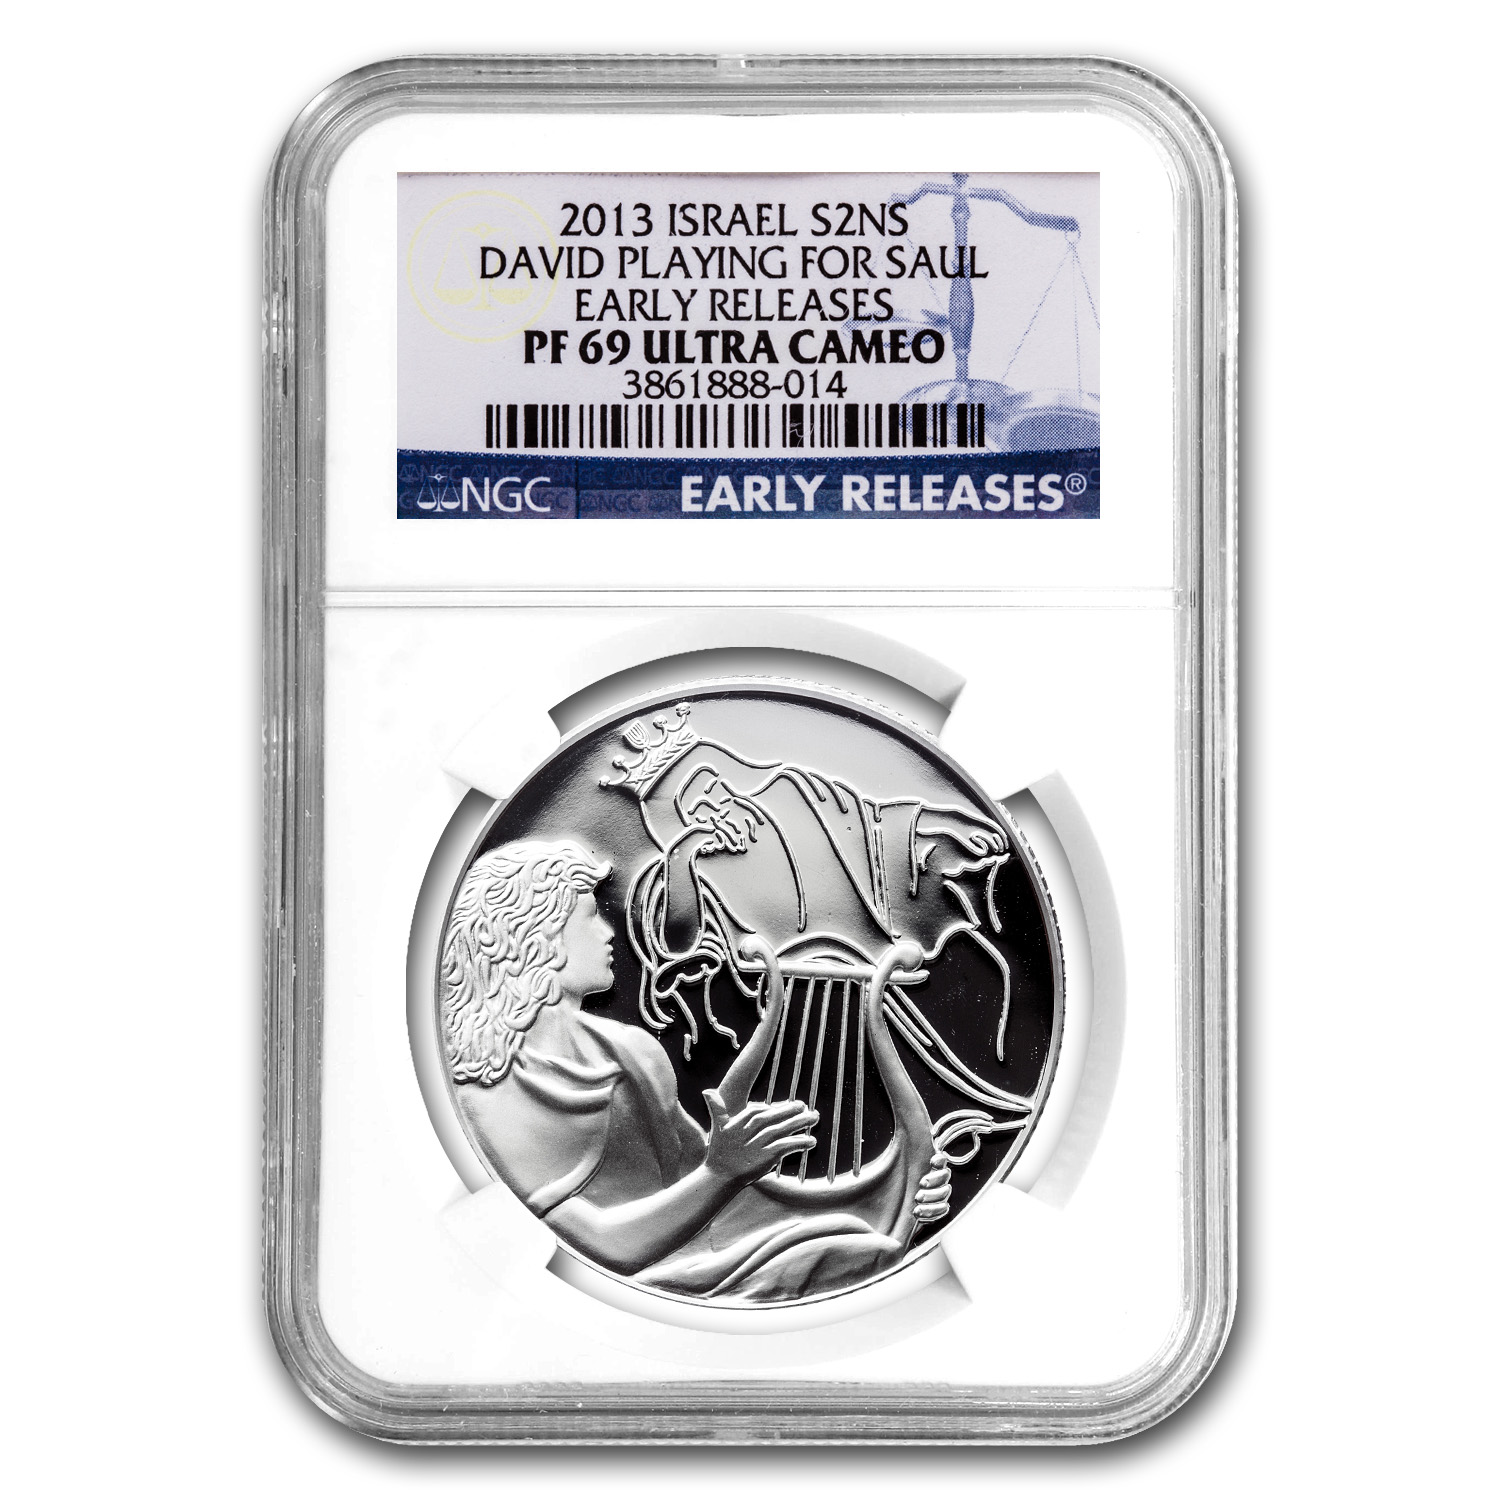 2013 Israel Silver 2 NIS David Playing for Saul PF-69 NGC (ER)